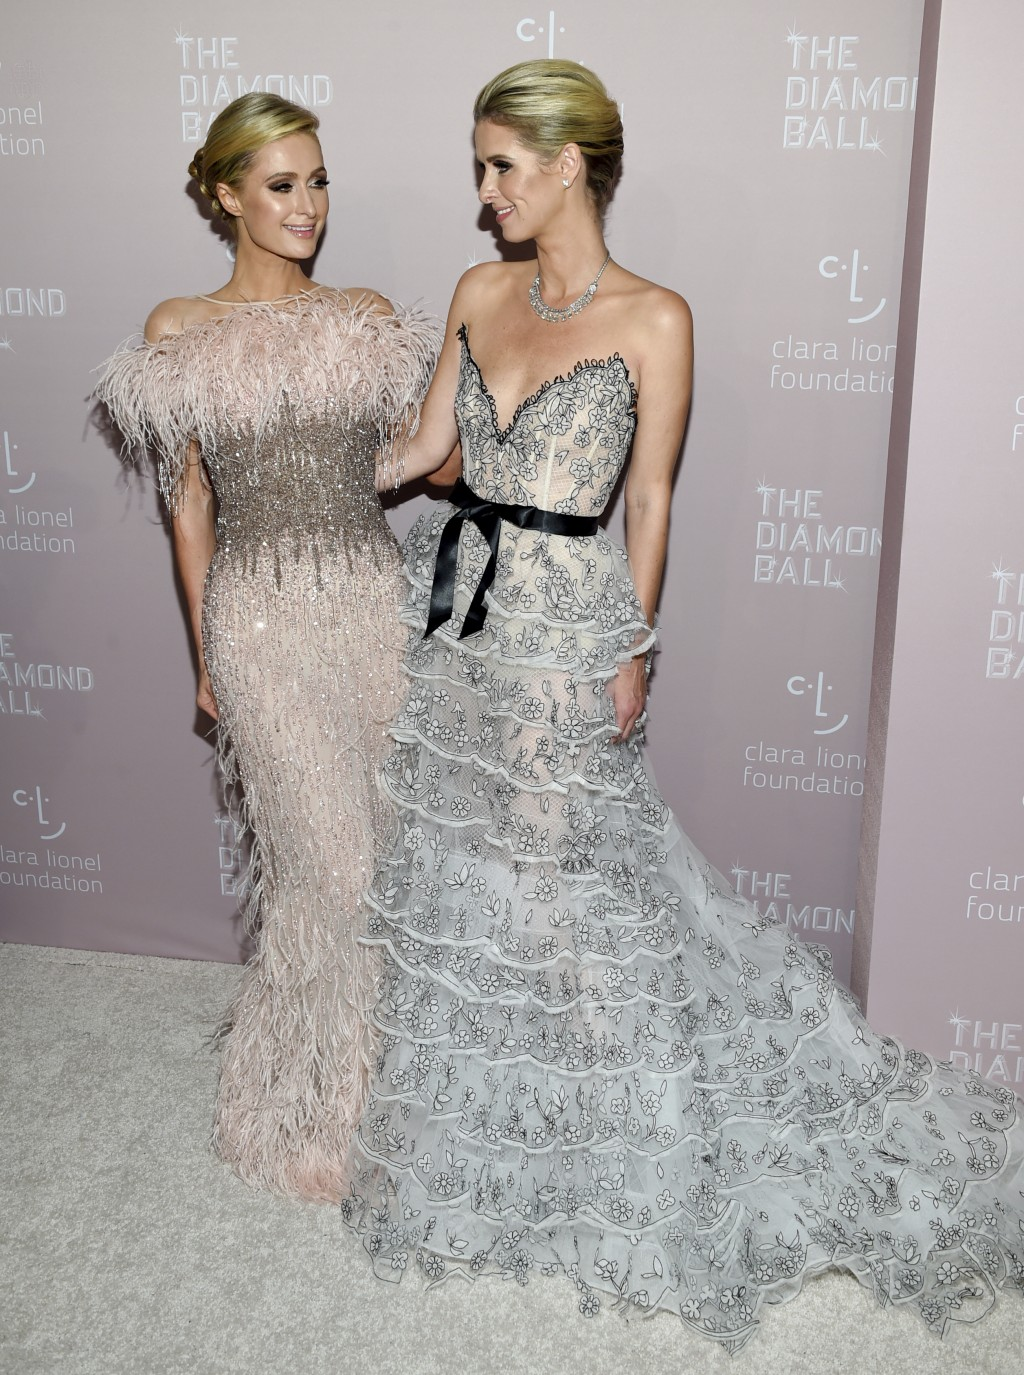 Sisters Paris Hilton, left, and Nicky Hilton Rothschild attend the 4th annual Diamond Ball at Cipriani Wall Street on Thursday, Sept. 13, 2018, in New